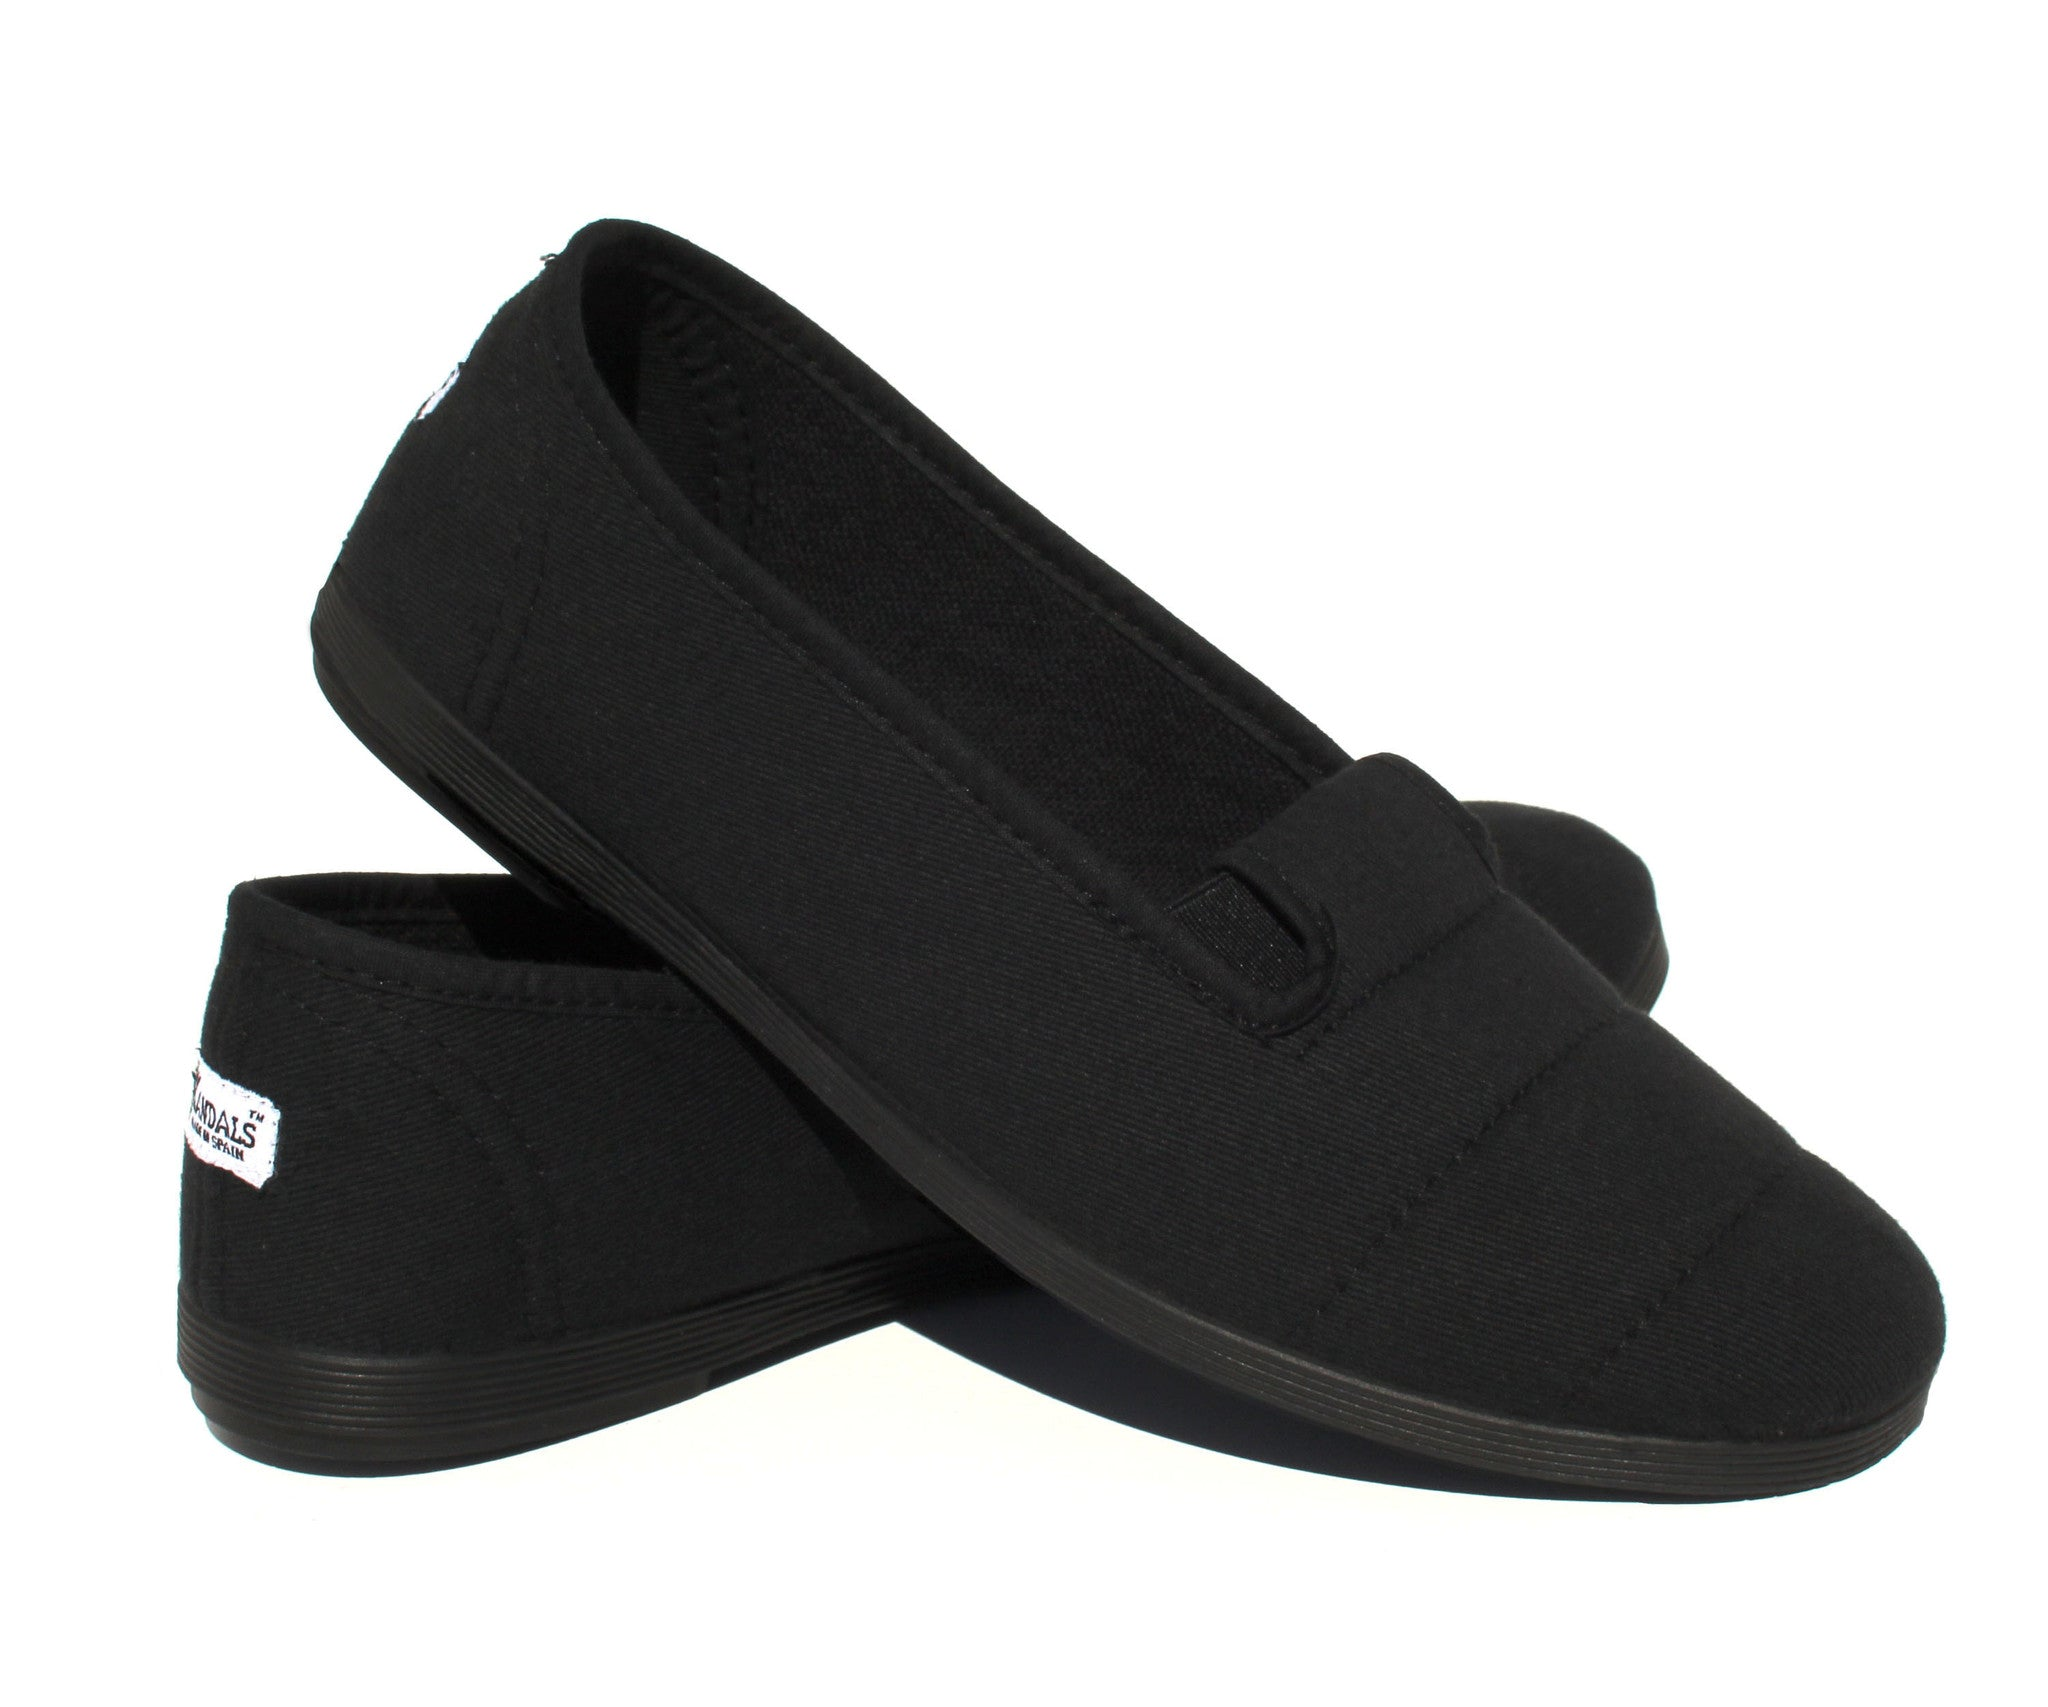 Women s Canvas Shoes - Envir All Black ... 035673242b